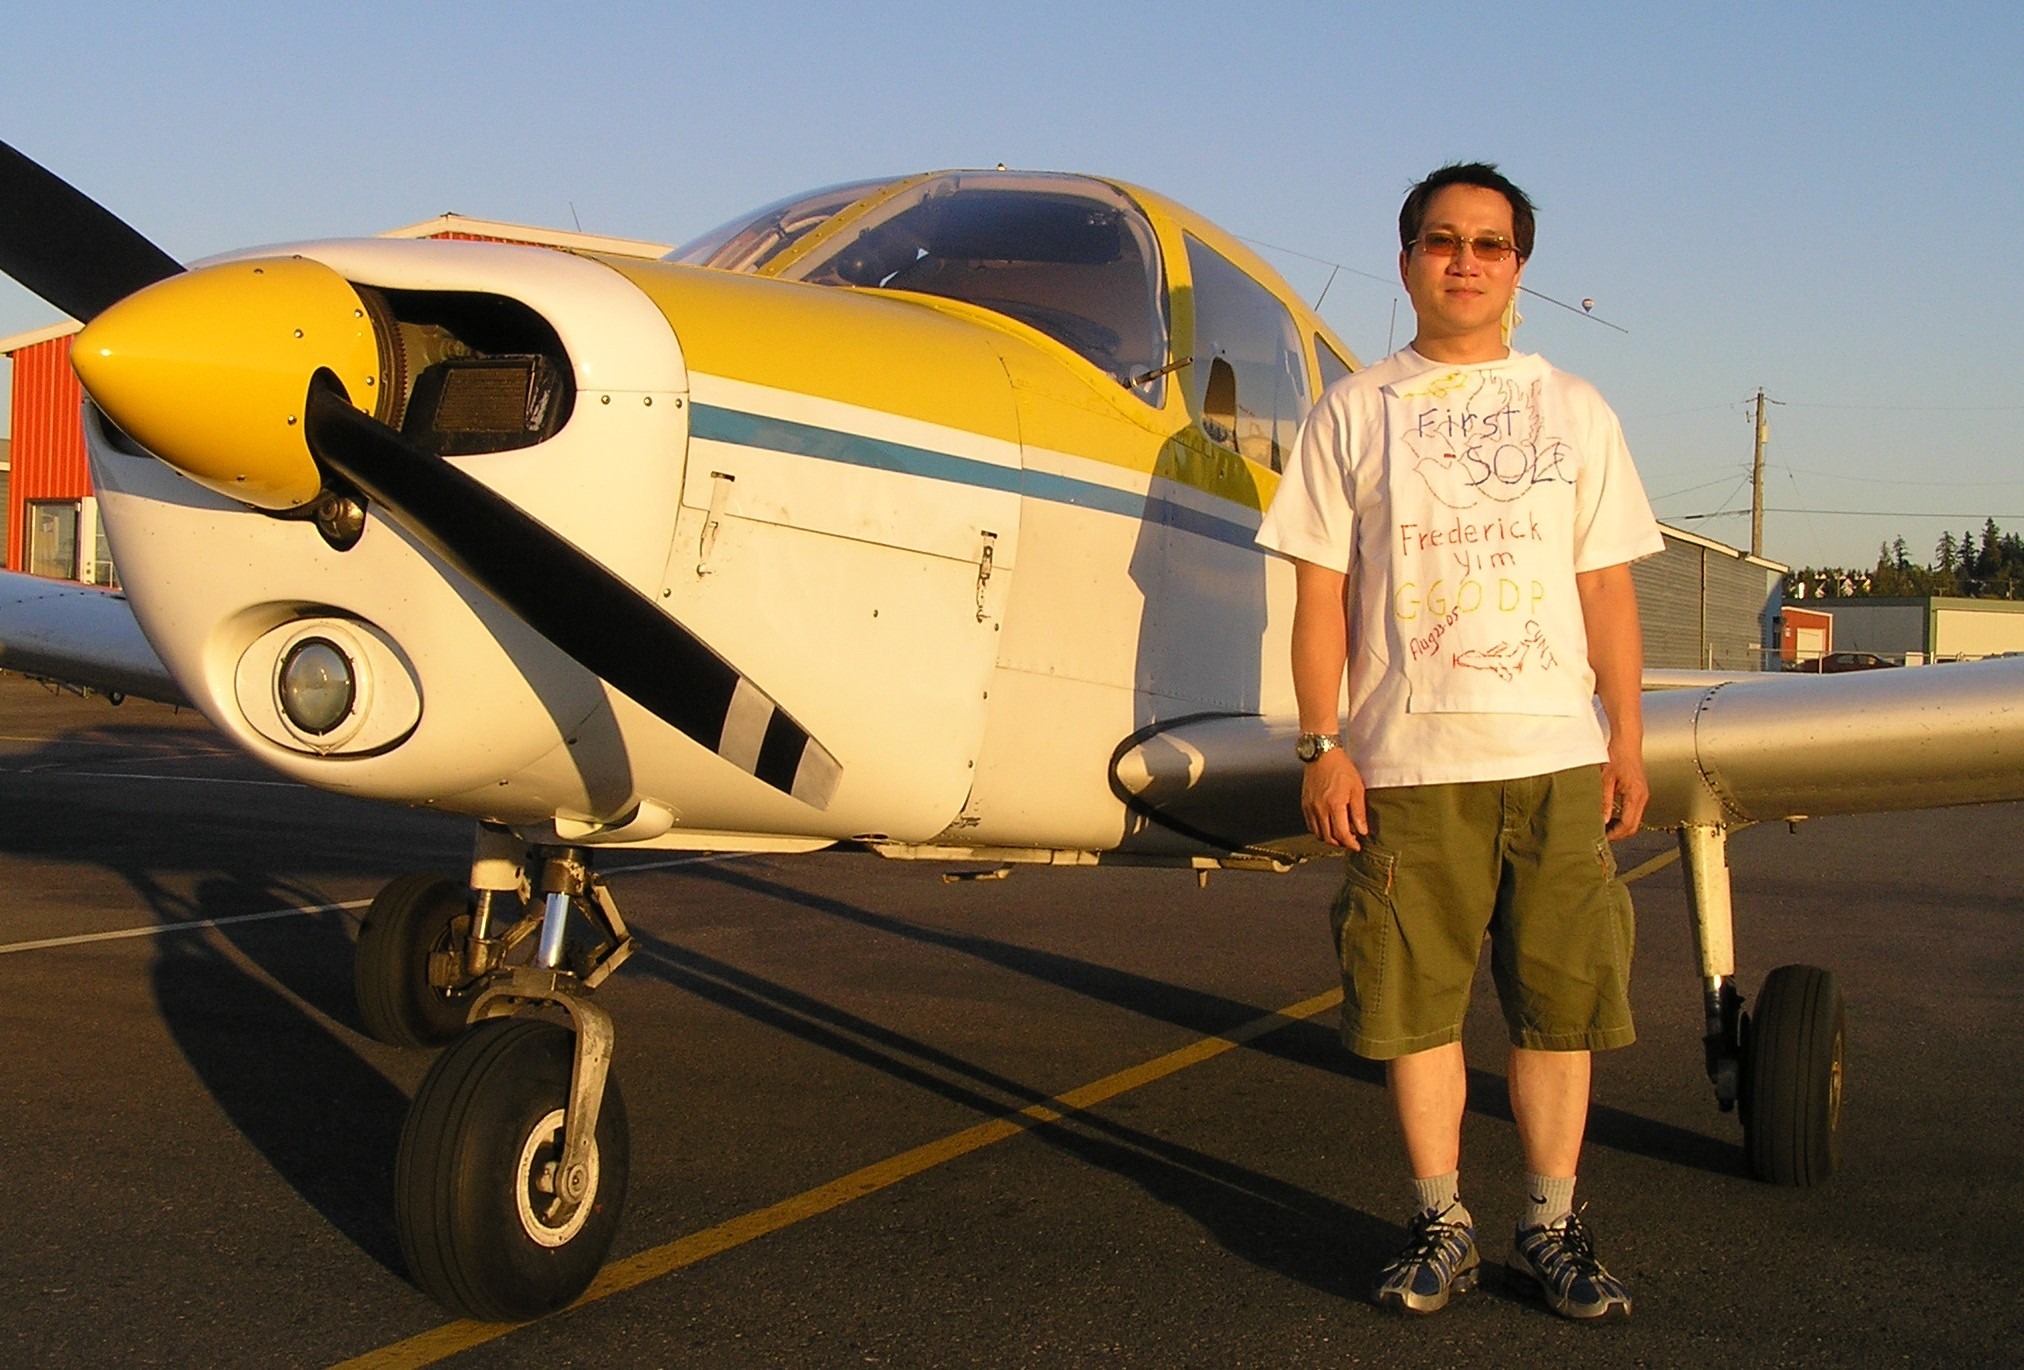 Frederick Yim with Cherokee GODP after his First Solo Flight.  Langley Flying School.